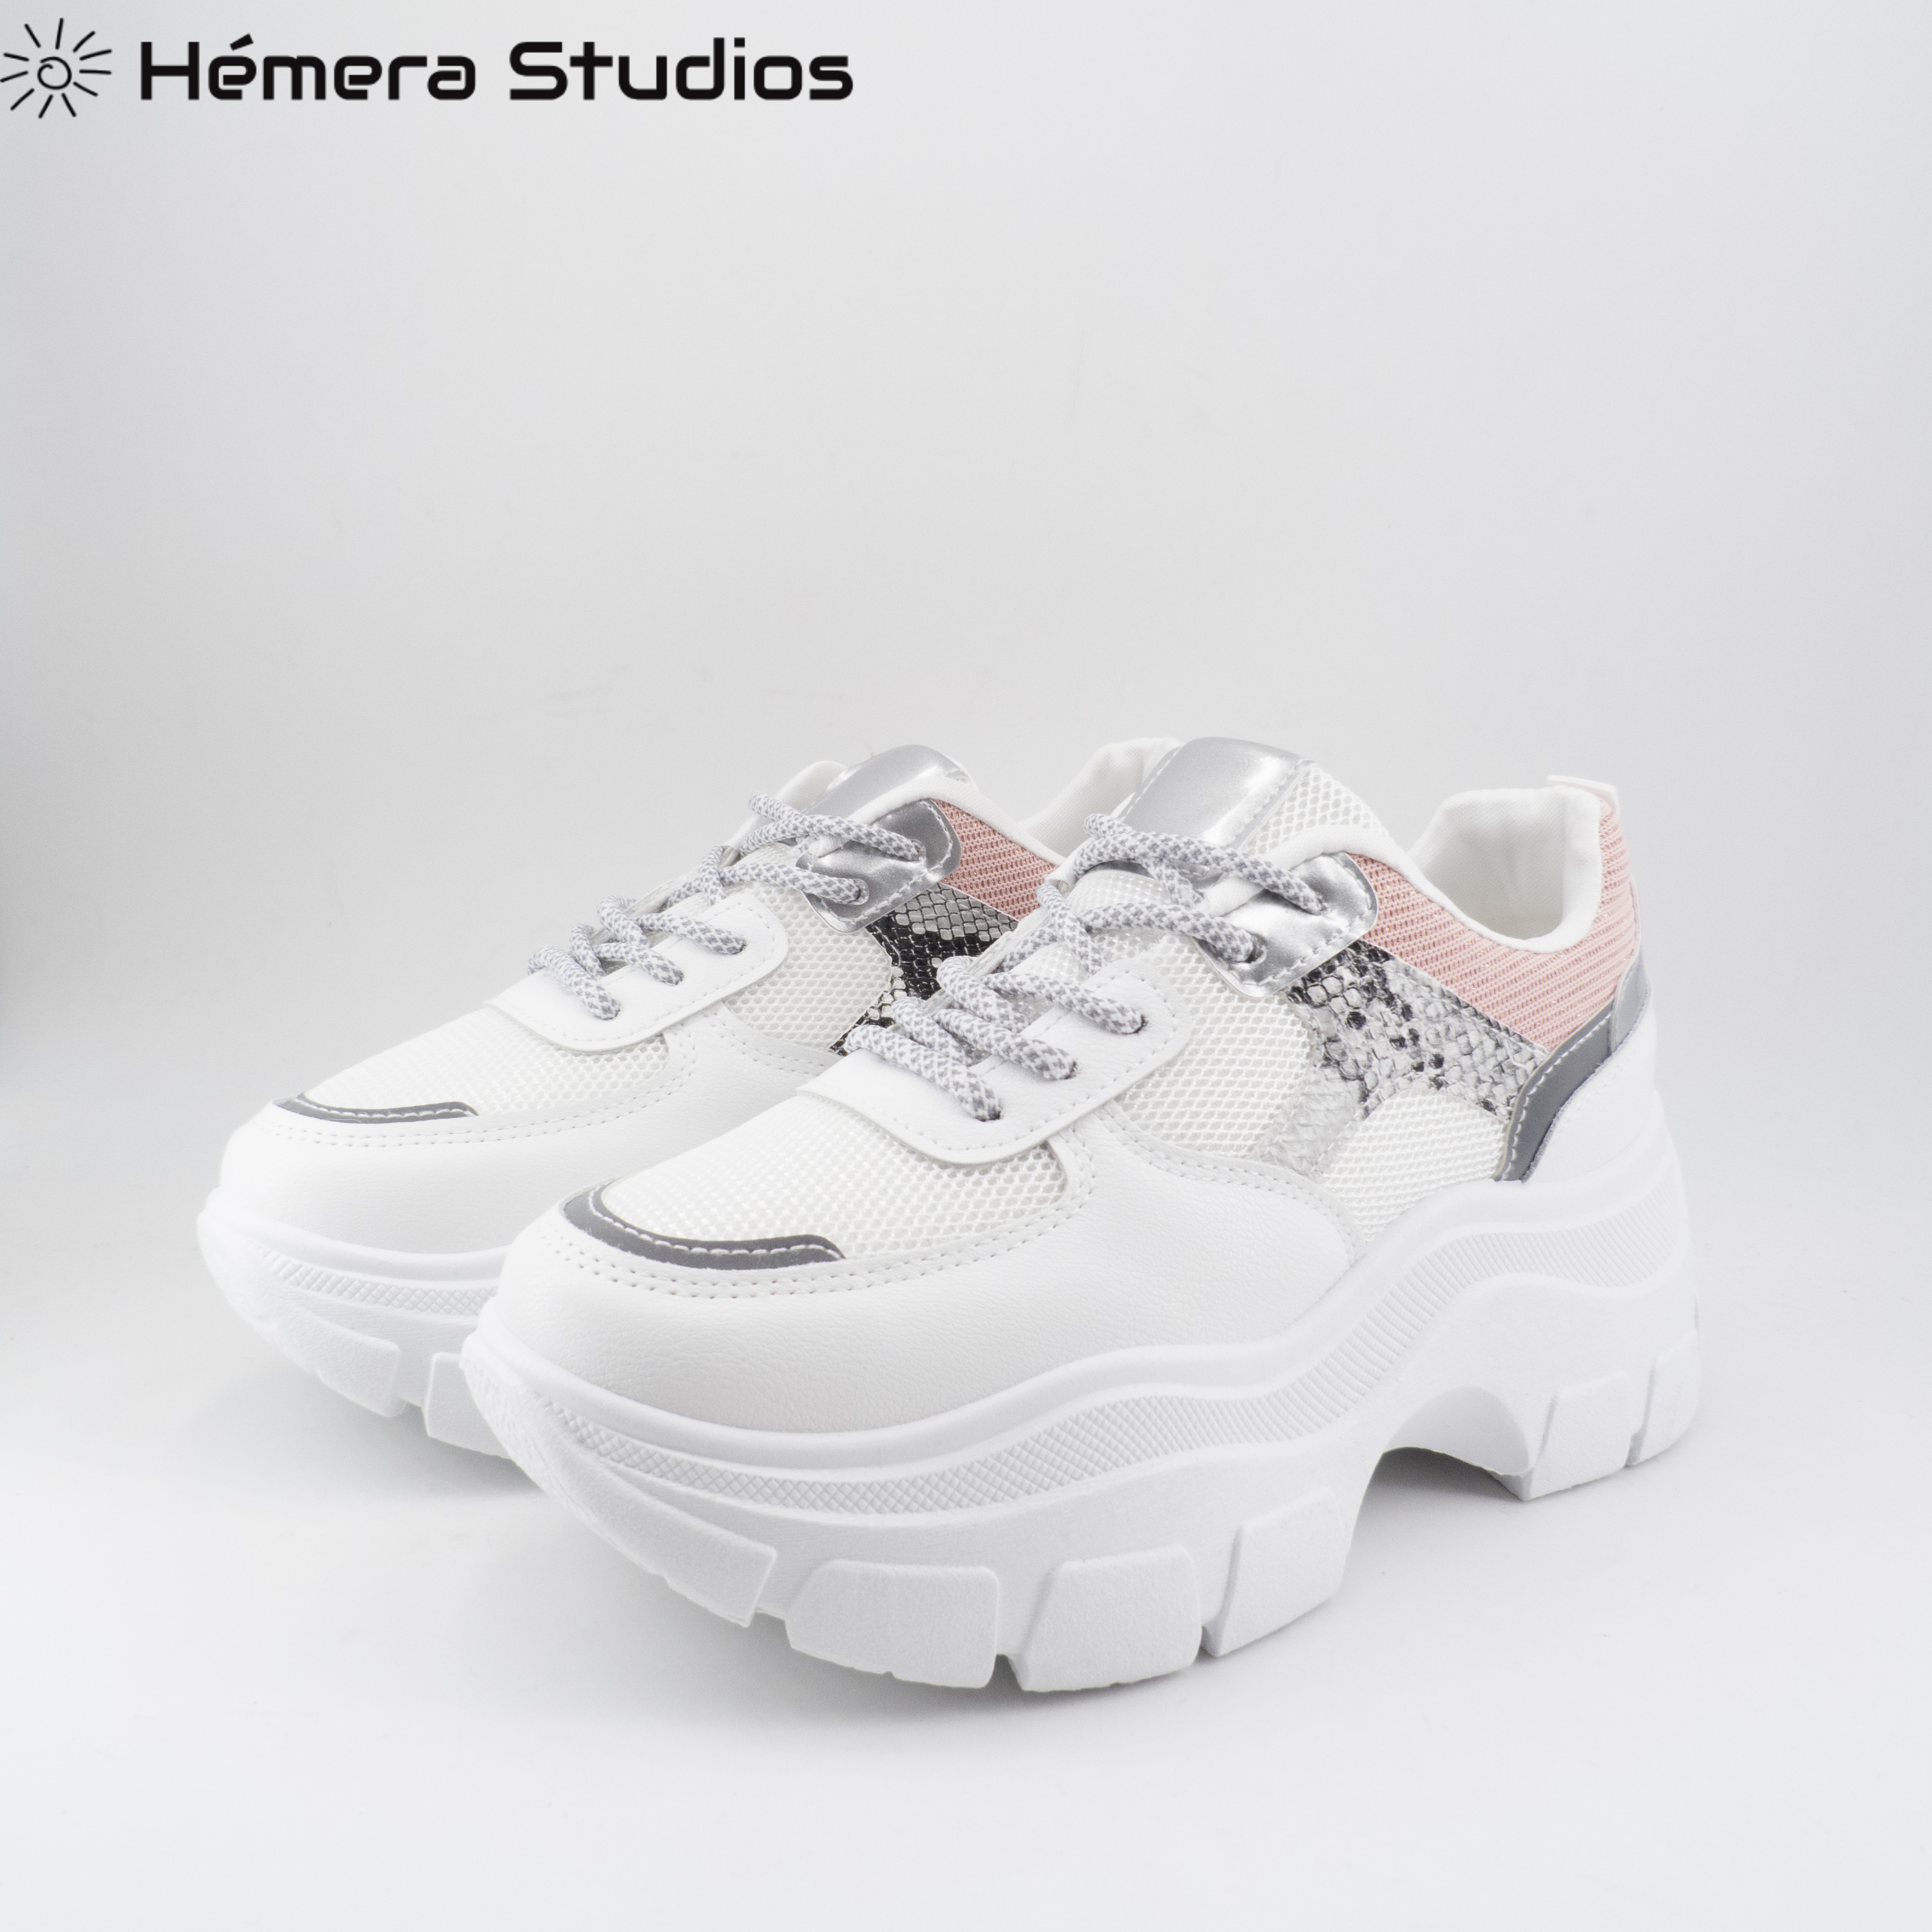 Casual Shoes For Woman With Cords Platform Shoes For Women In White Color With Stamping Animal